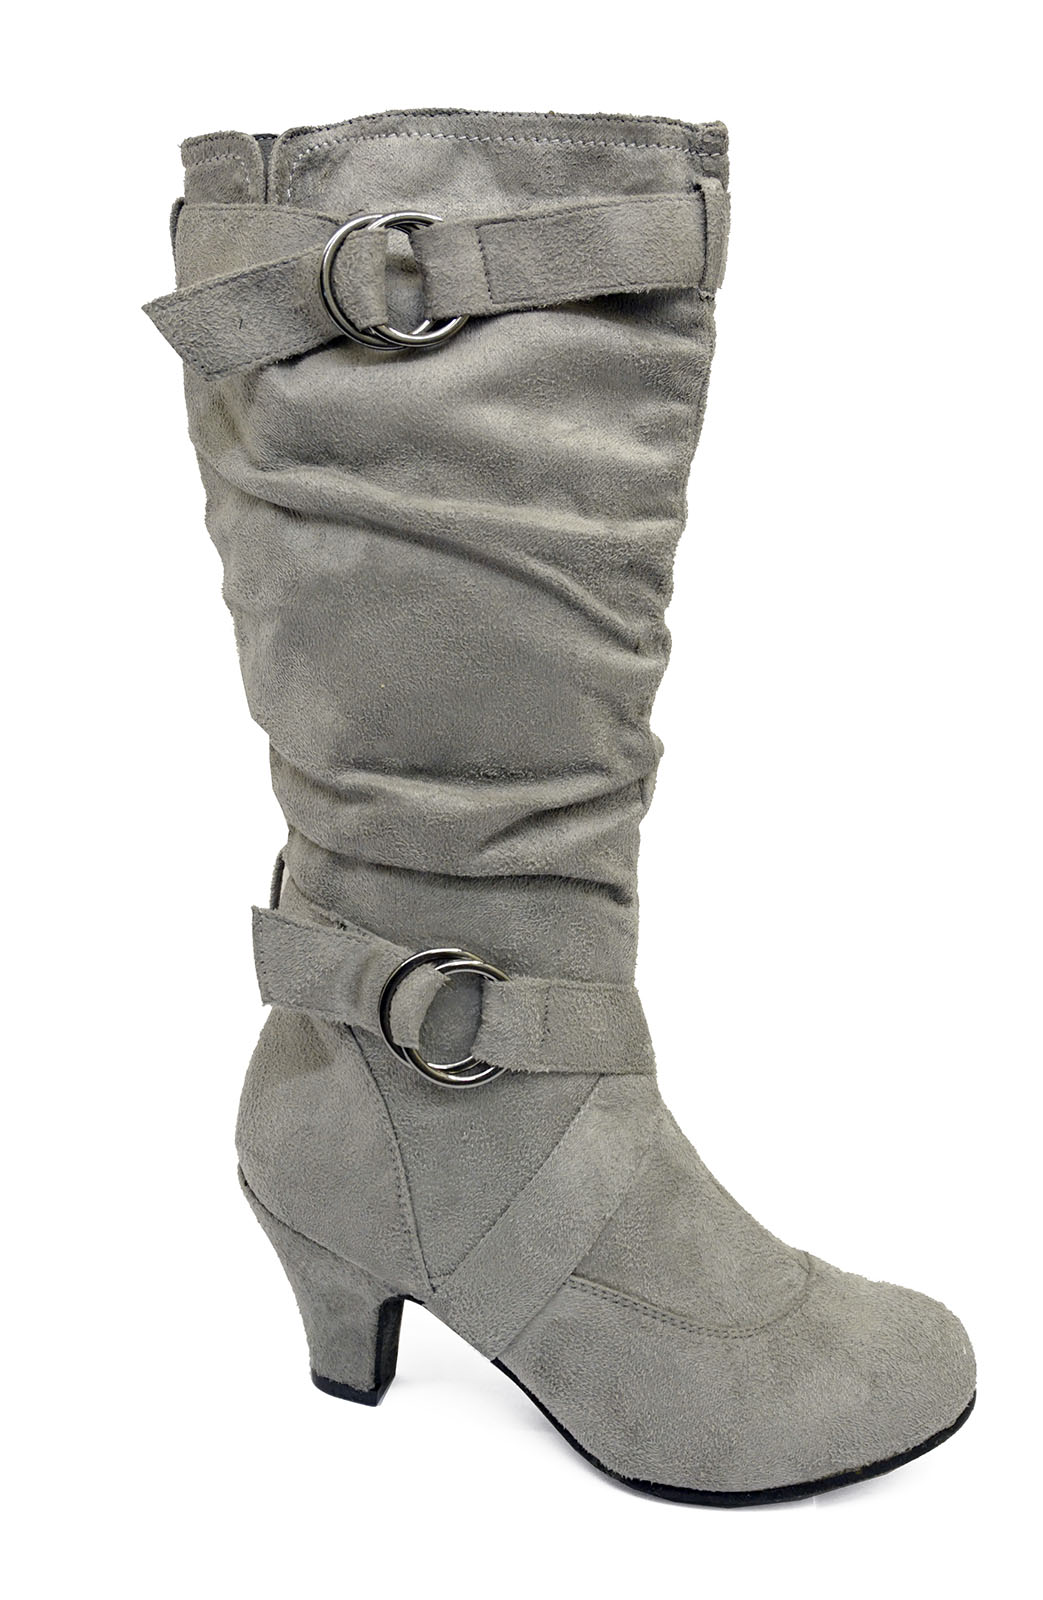 LADIES-GREY-ZIP-UP-BIKER-SLOUCH-RUCHED-TALL-KNEE-CALF-LOW-HEEL-BOOTS-SHOES-4-10 thumbnail 14